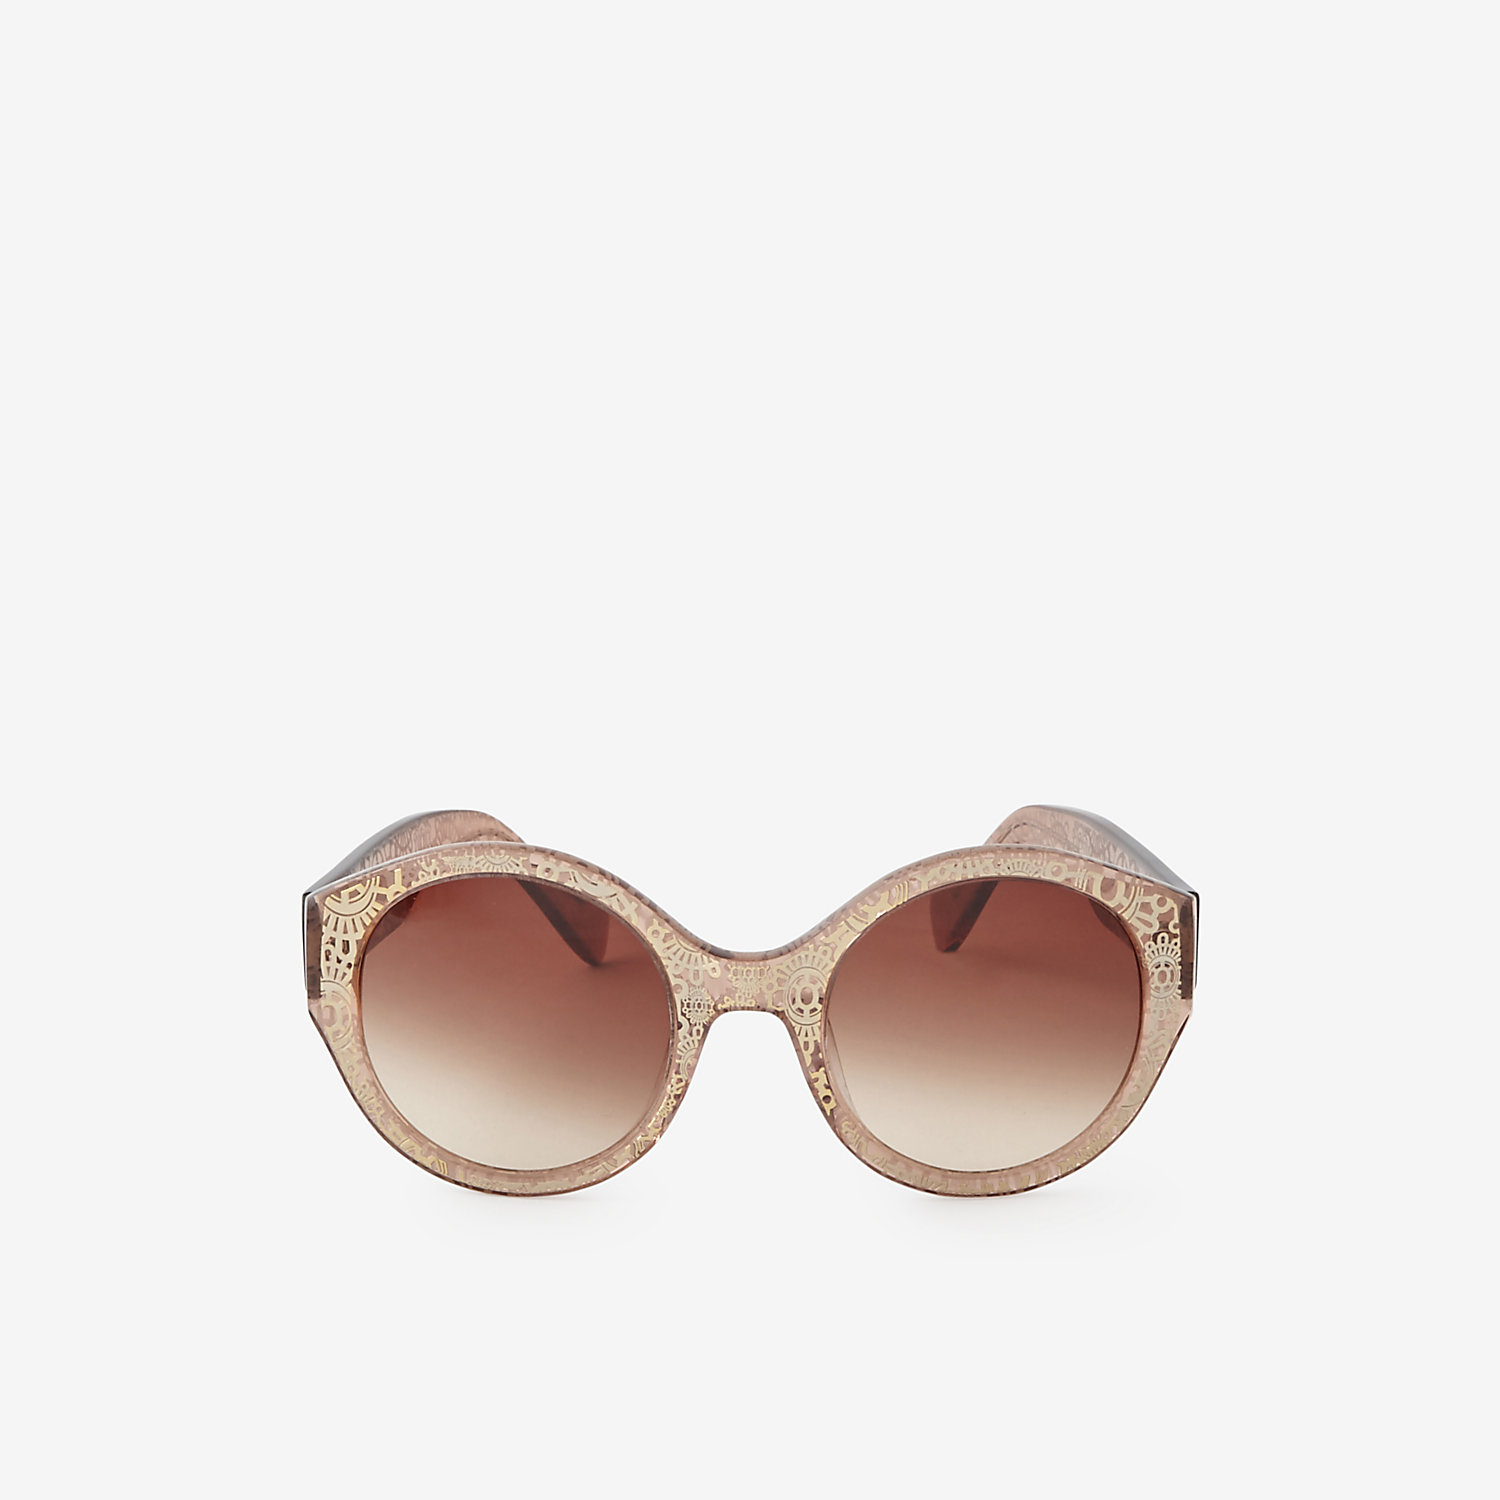 GRACE LEE CAMILLA SUNGLASSES